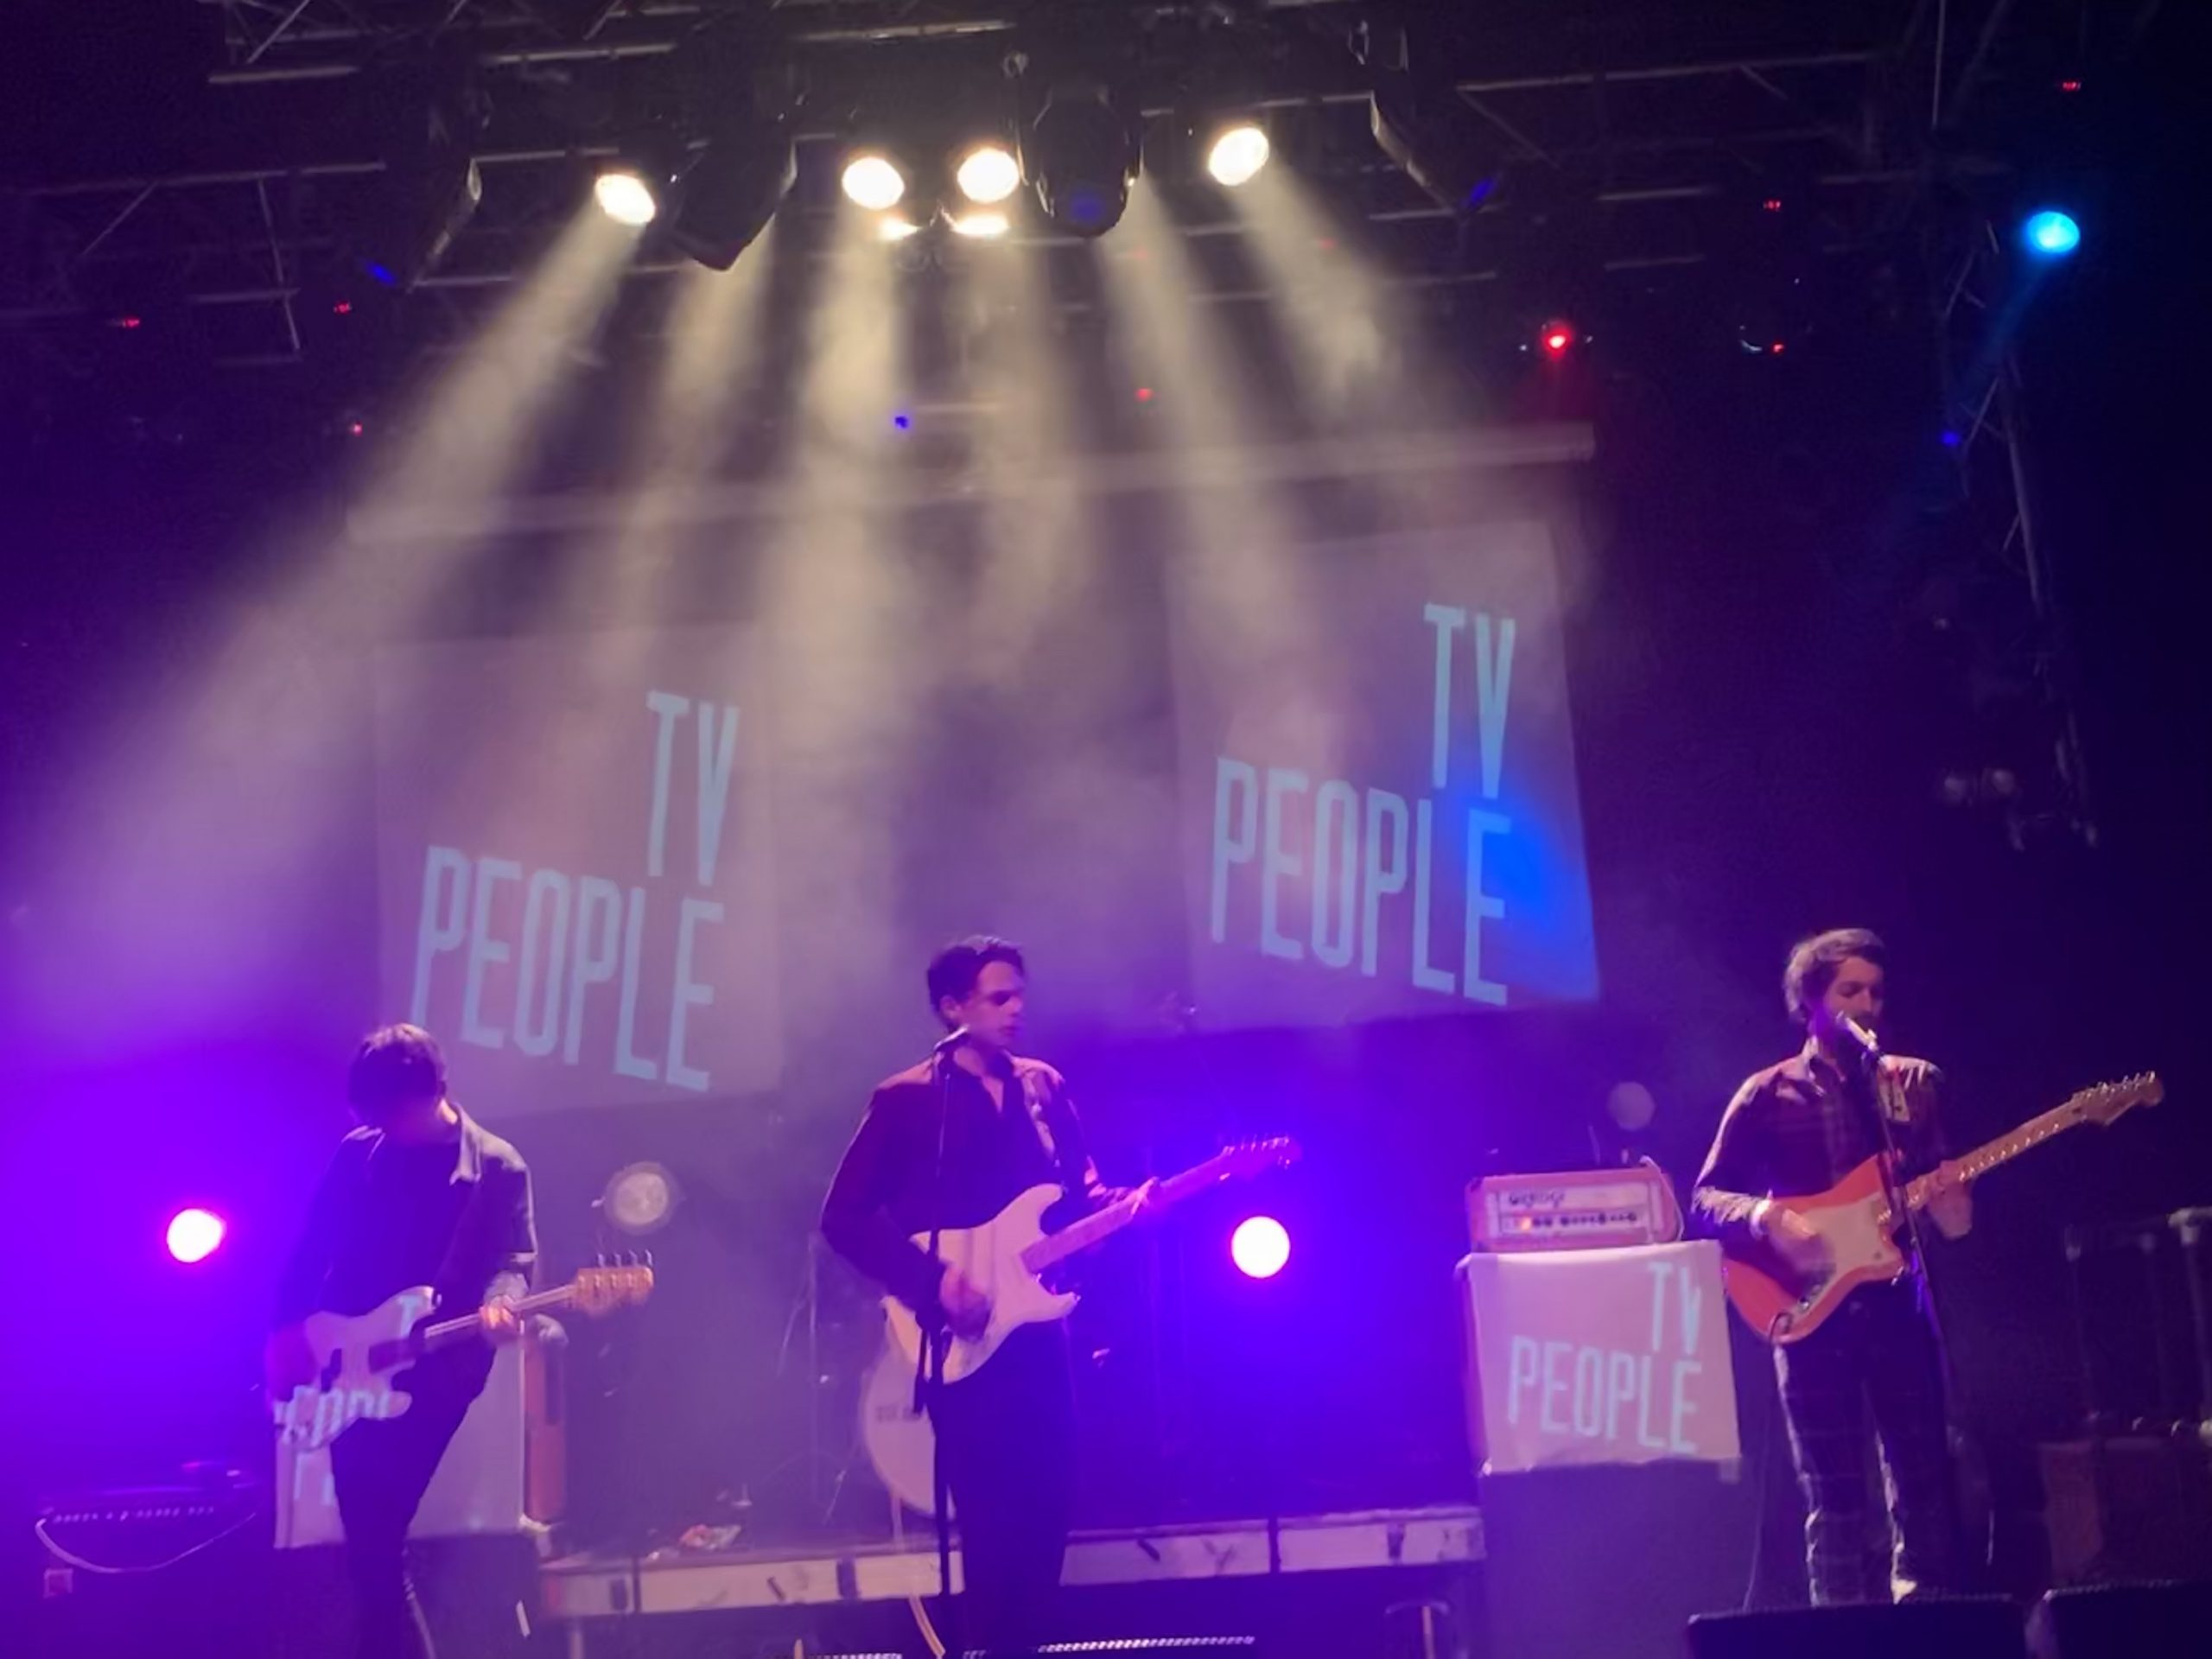 TV People opening up Tilt #5 @ The Button Factory.